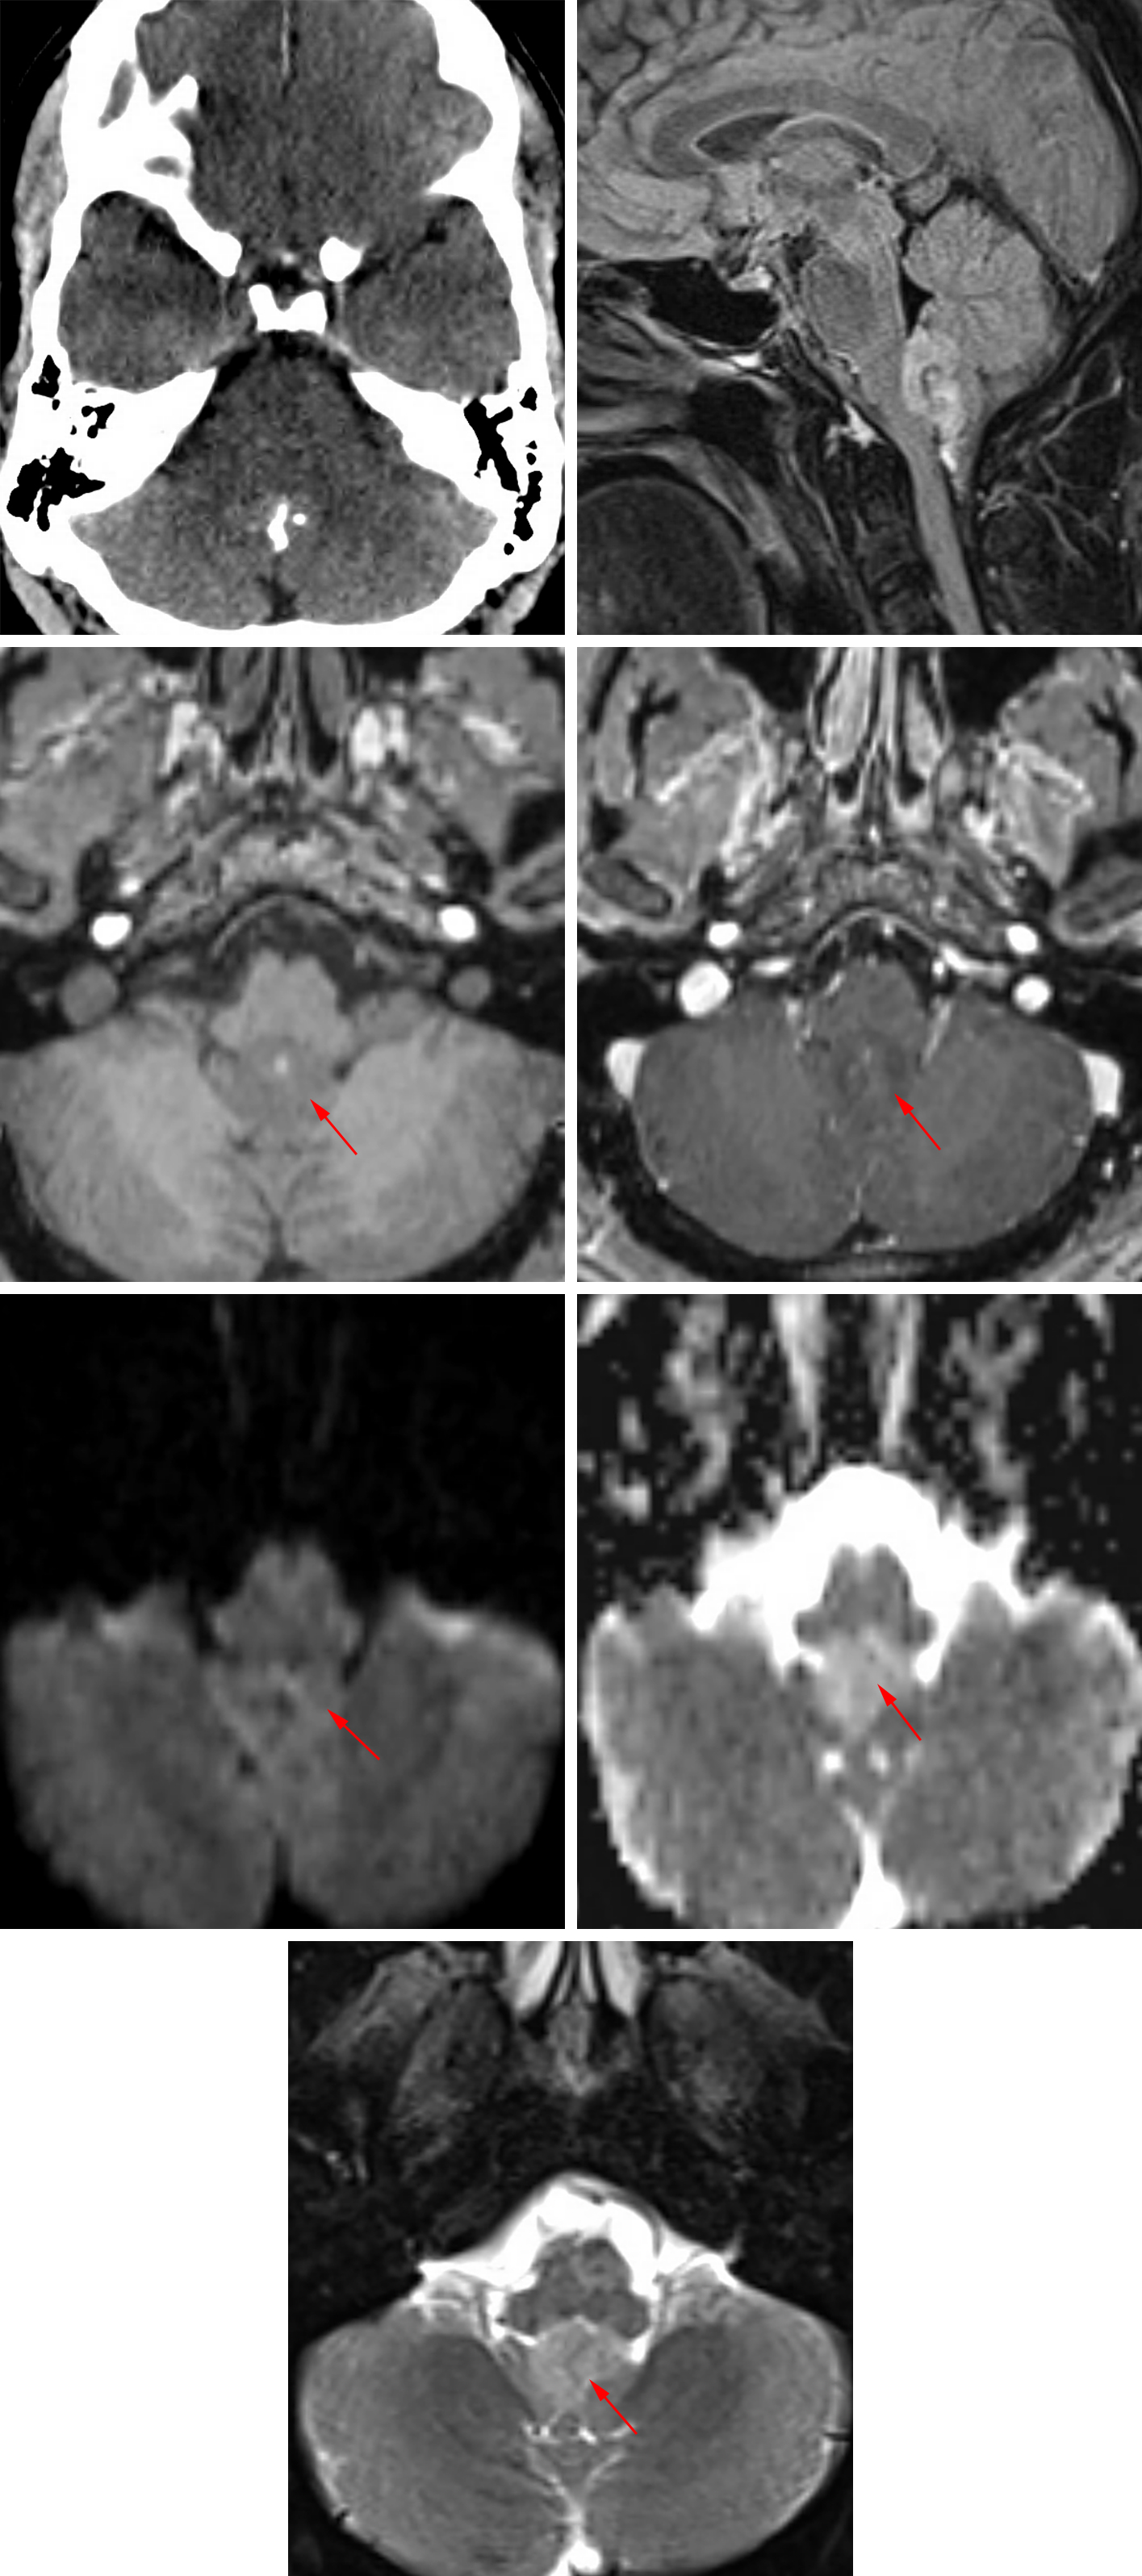 Figure 3: Axial noncontrast head CT imaging demonstrates a calcified lesion in the fourth ventricle. Sagittal FLAIR (top right), axial T1-weighted (without contrast) (second row, left), axial T1-weighted (postcontrast) (second row, right), DWI (third row, left), ADC (third row, right), and axial T2FS (bottom) images demonstrate a nonenhancing mass arising from the floor of the fourth ventricle without restricted diffusion. The appearance and location of this lesion are classic for subependymoma.